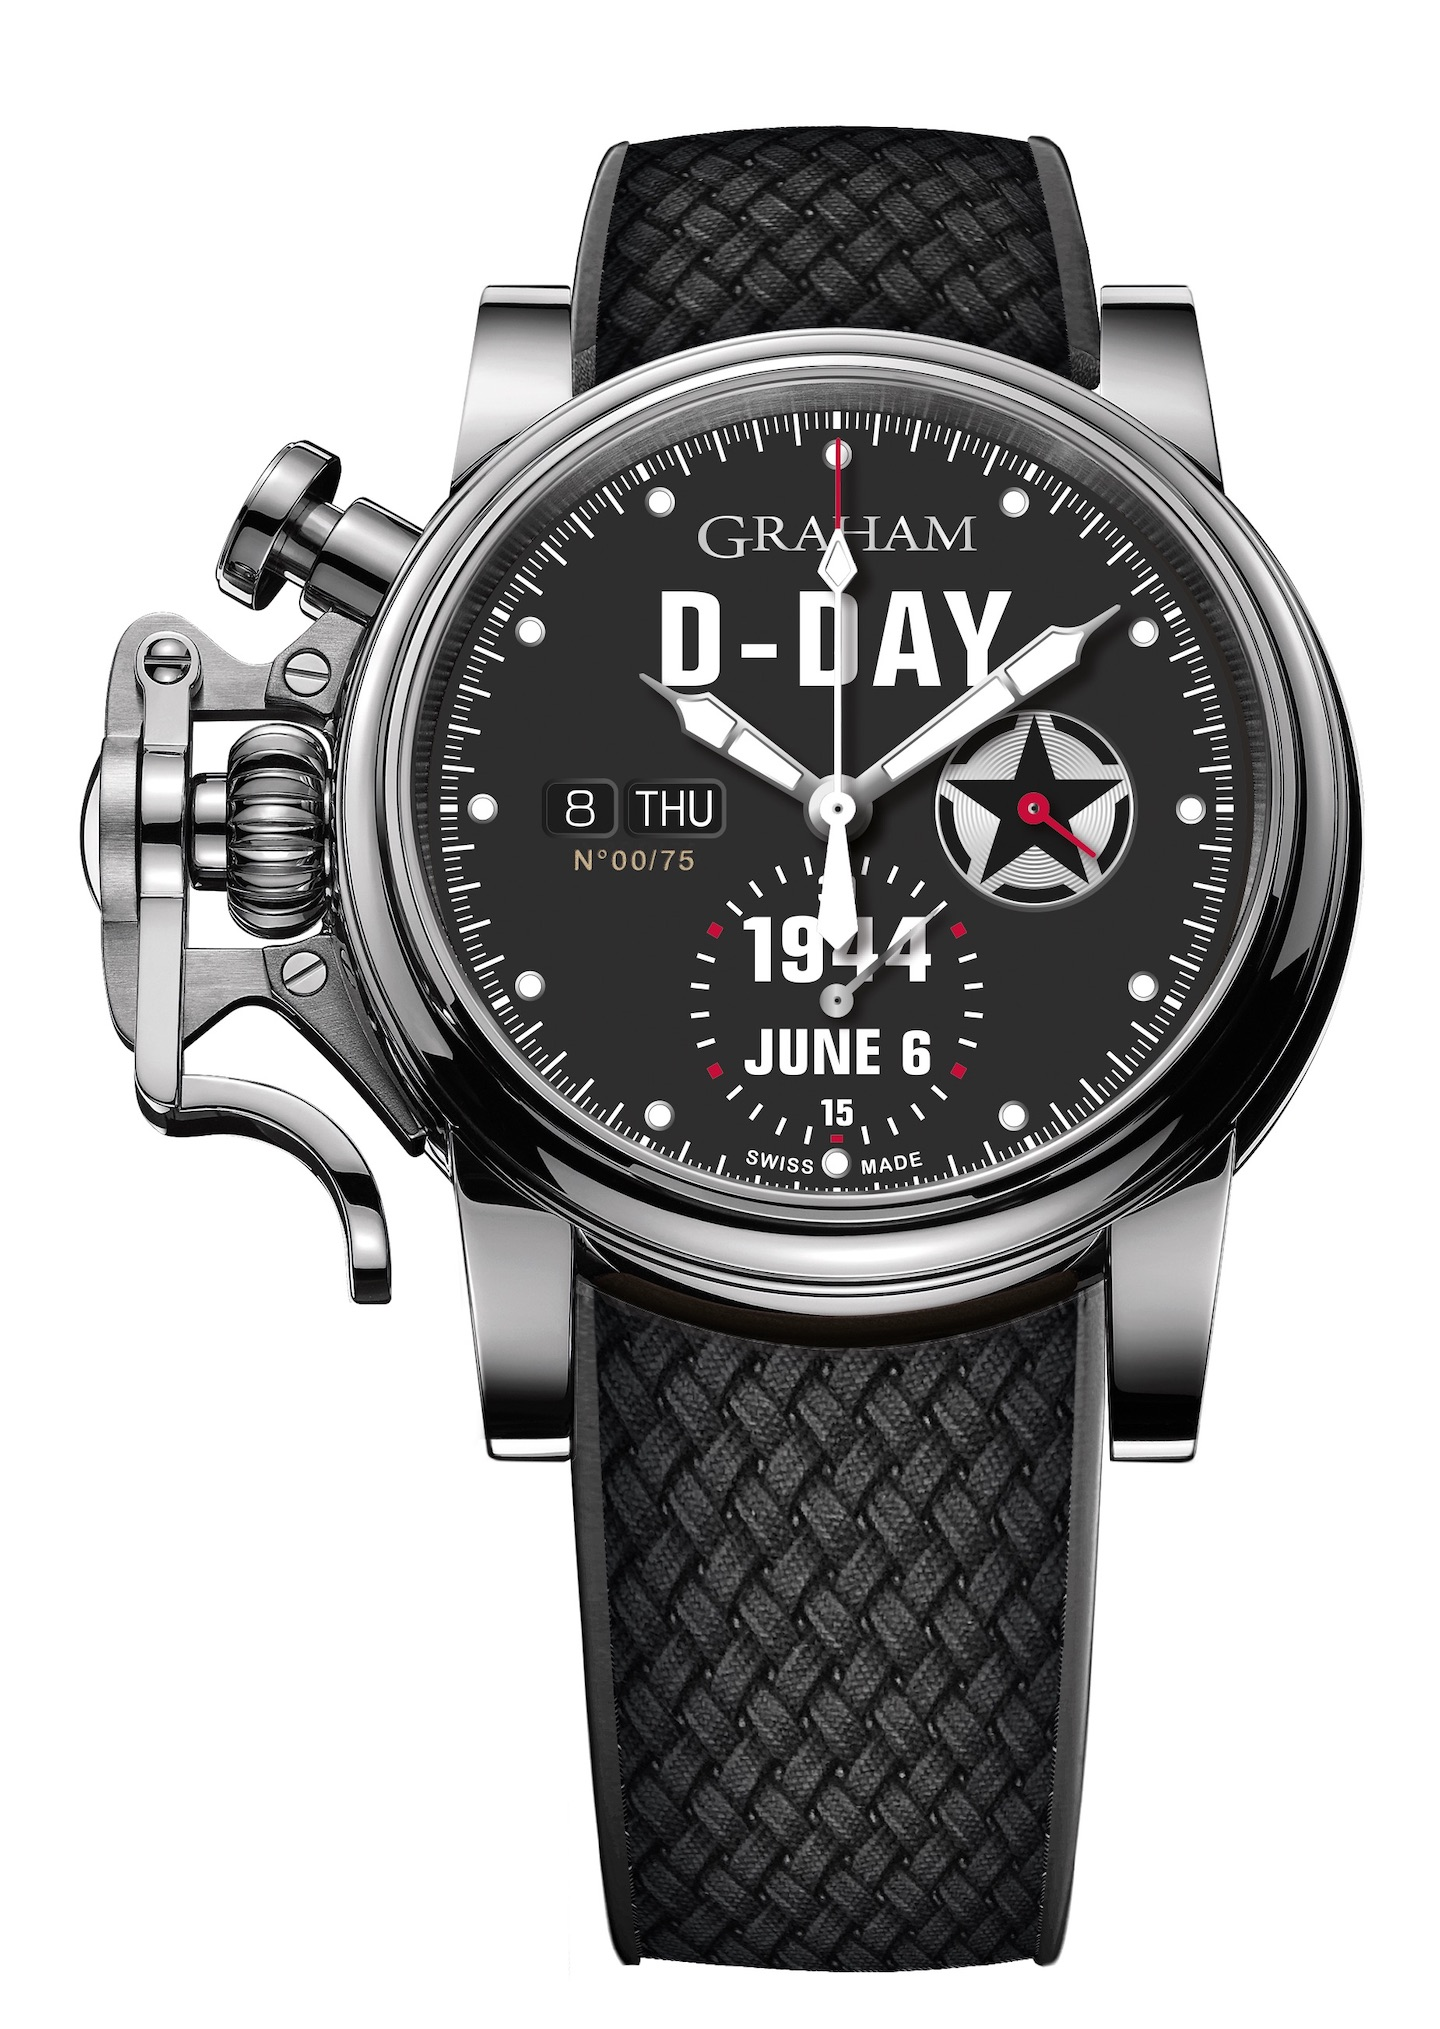 Graham Chronofighter Vintage D-Day watch.